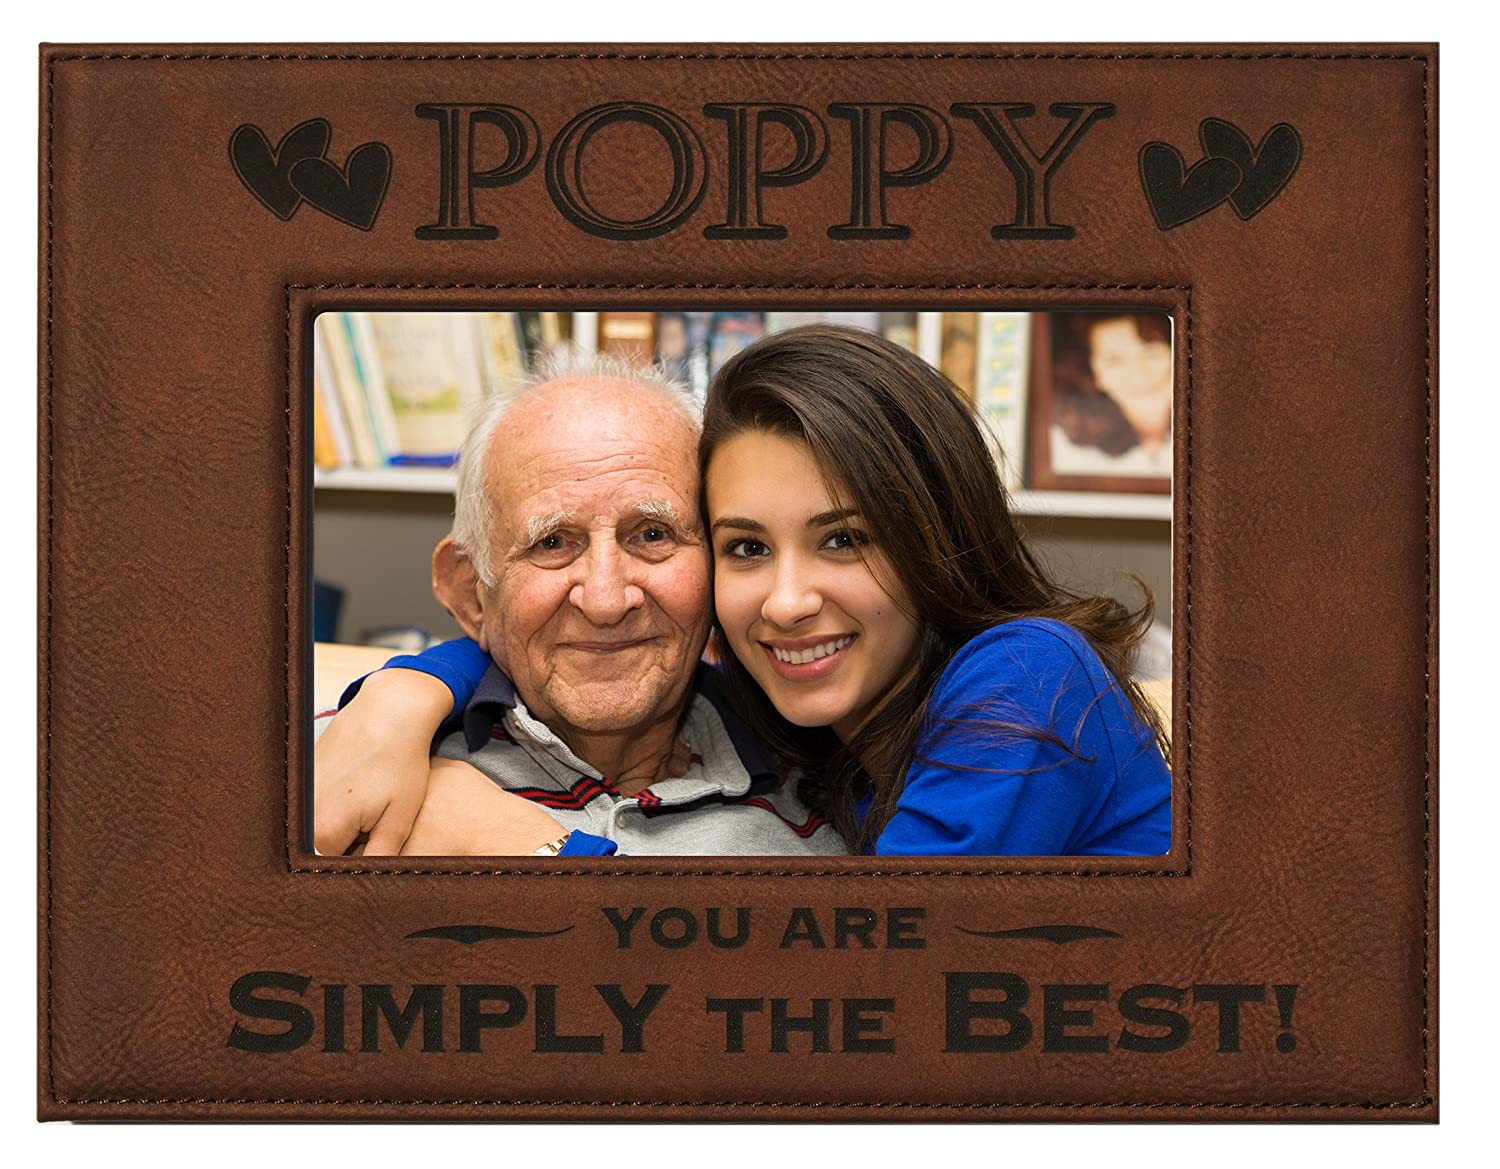 Amazon gift poppy picture frame engraved leatherette amazon gift poppy picture frame engraved leatherette picture frame poppy you are simply the best holds 4 x 6 photo great grandparents day jeuxipadfo Images